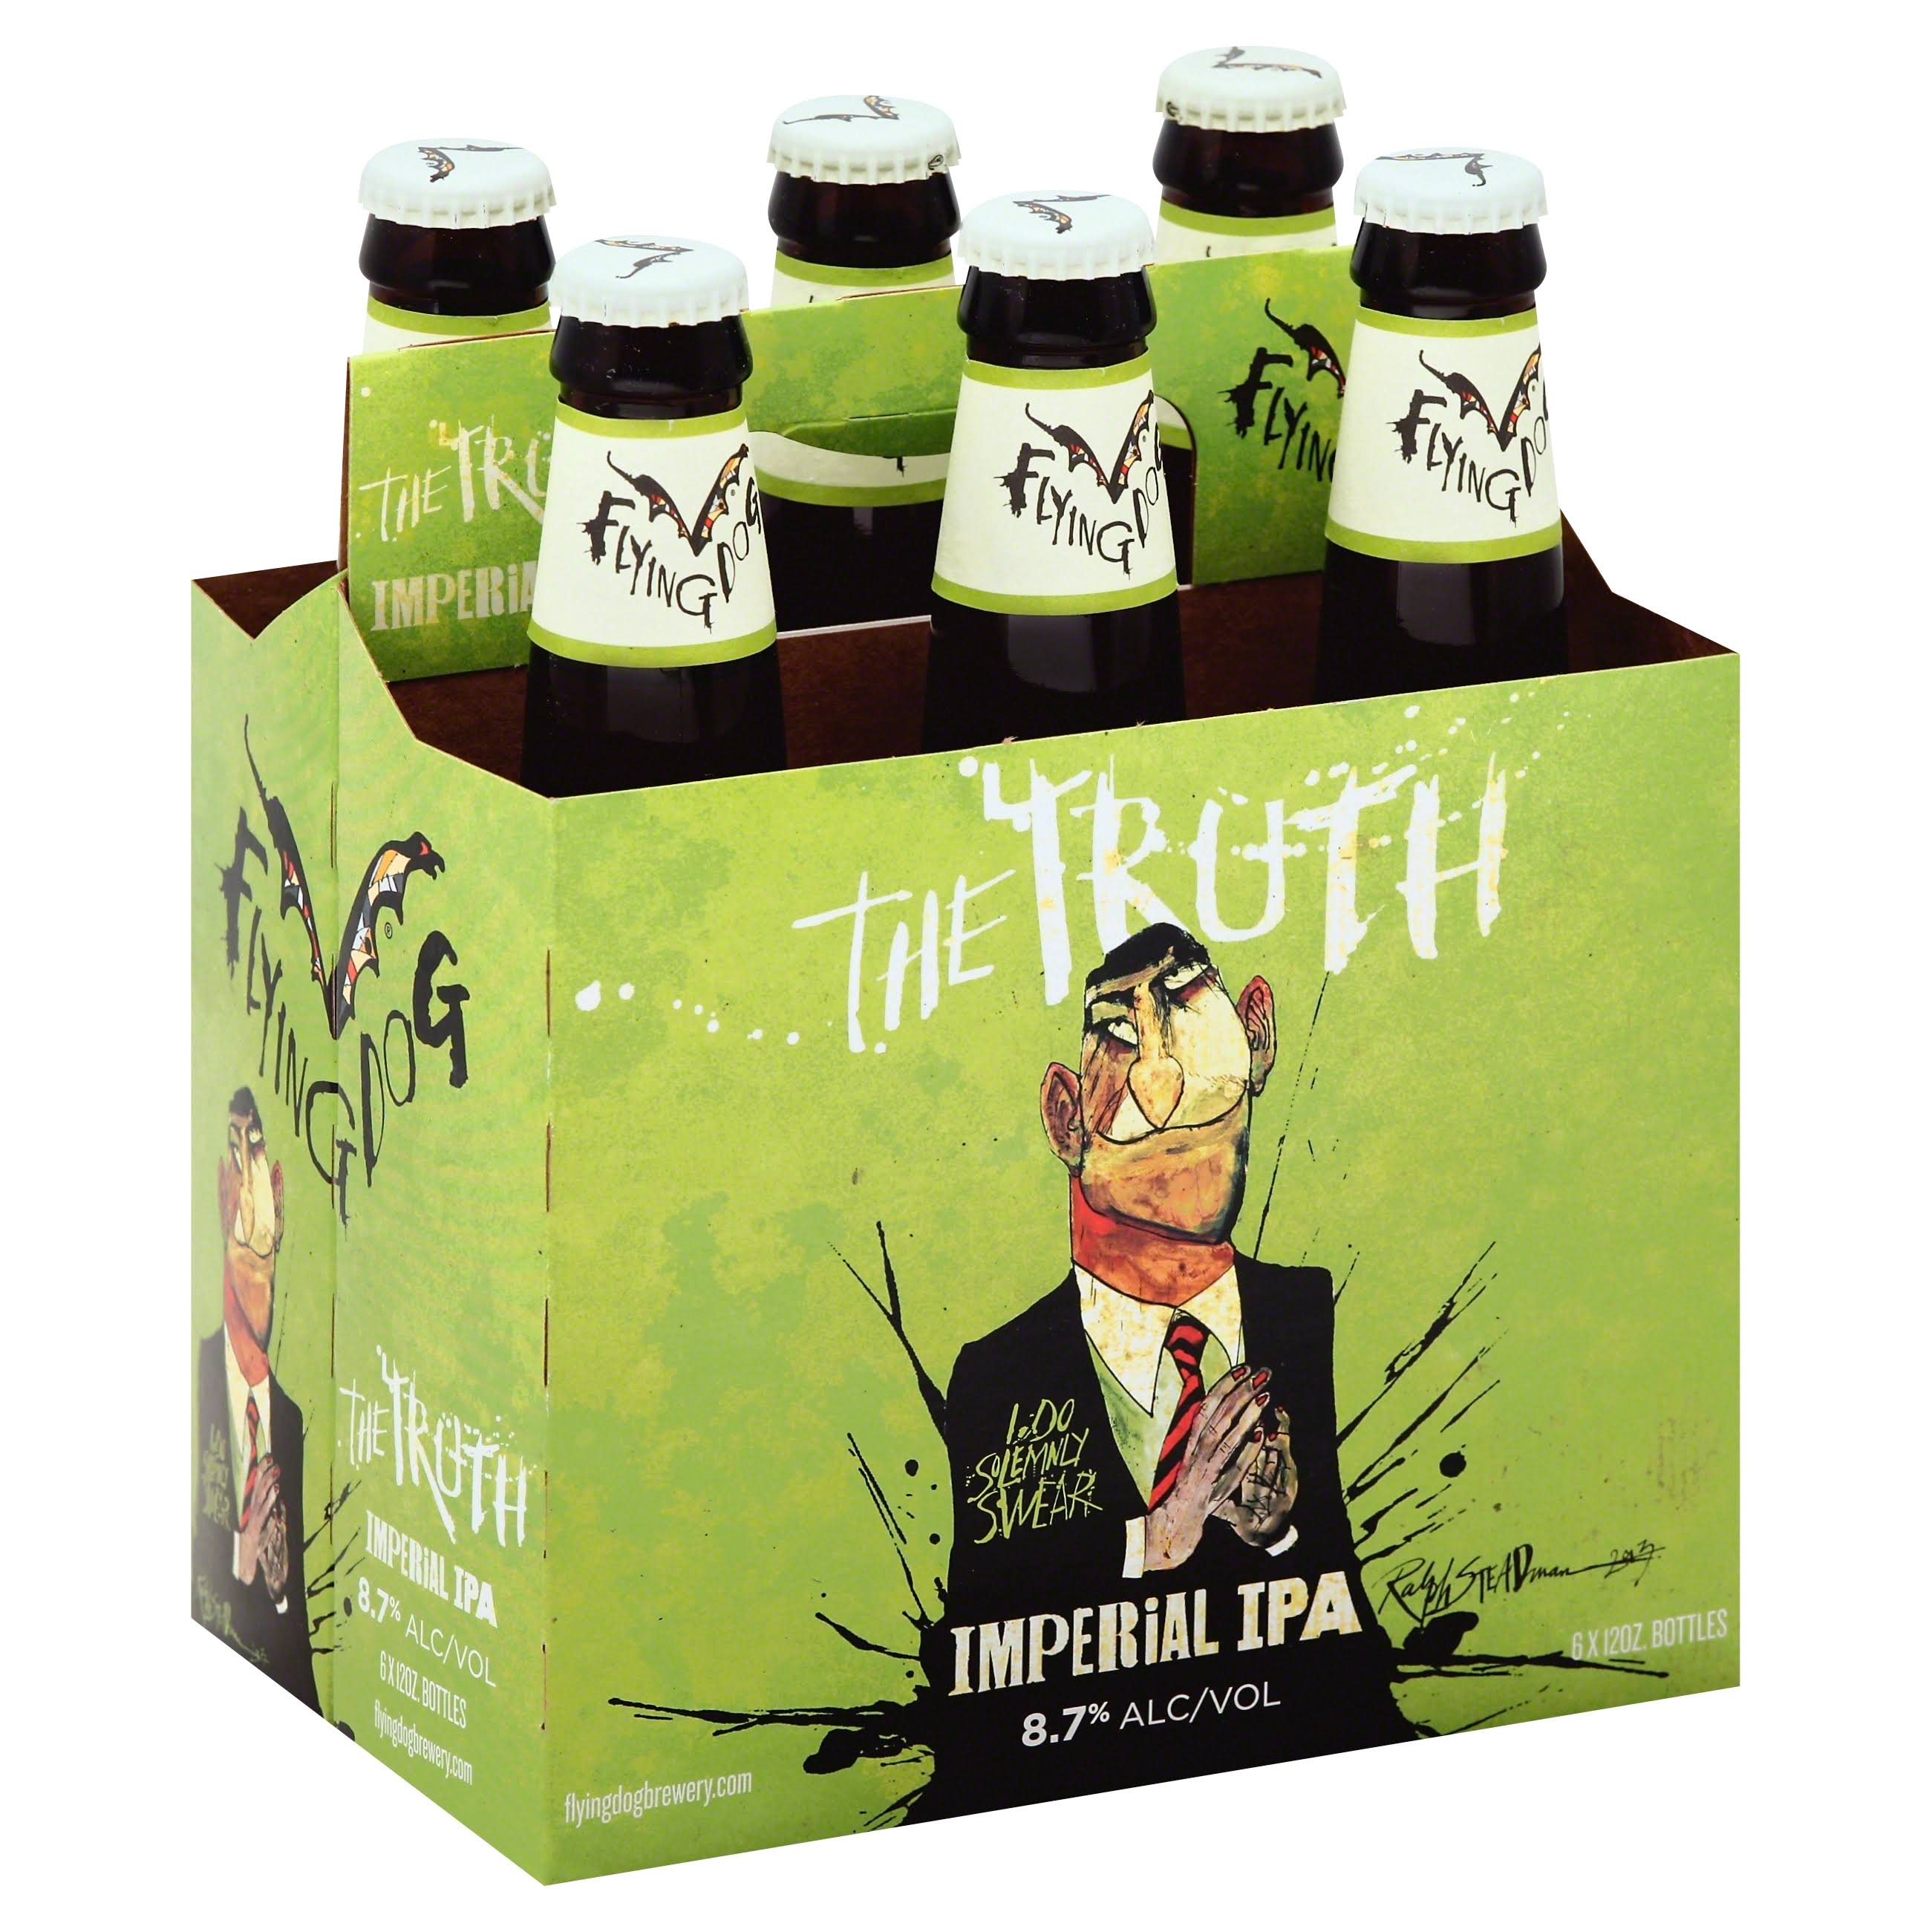 Flying Dog The Truth Imperial Ipa - 6pk, 12oz